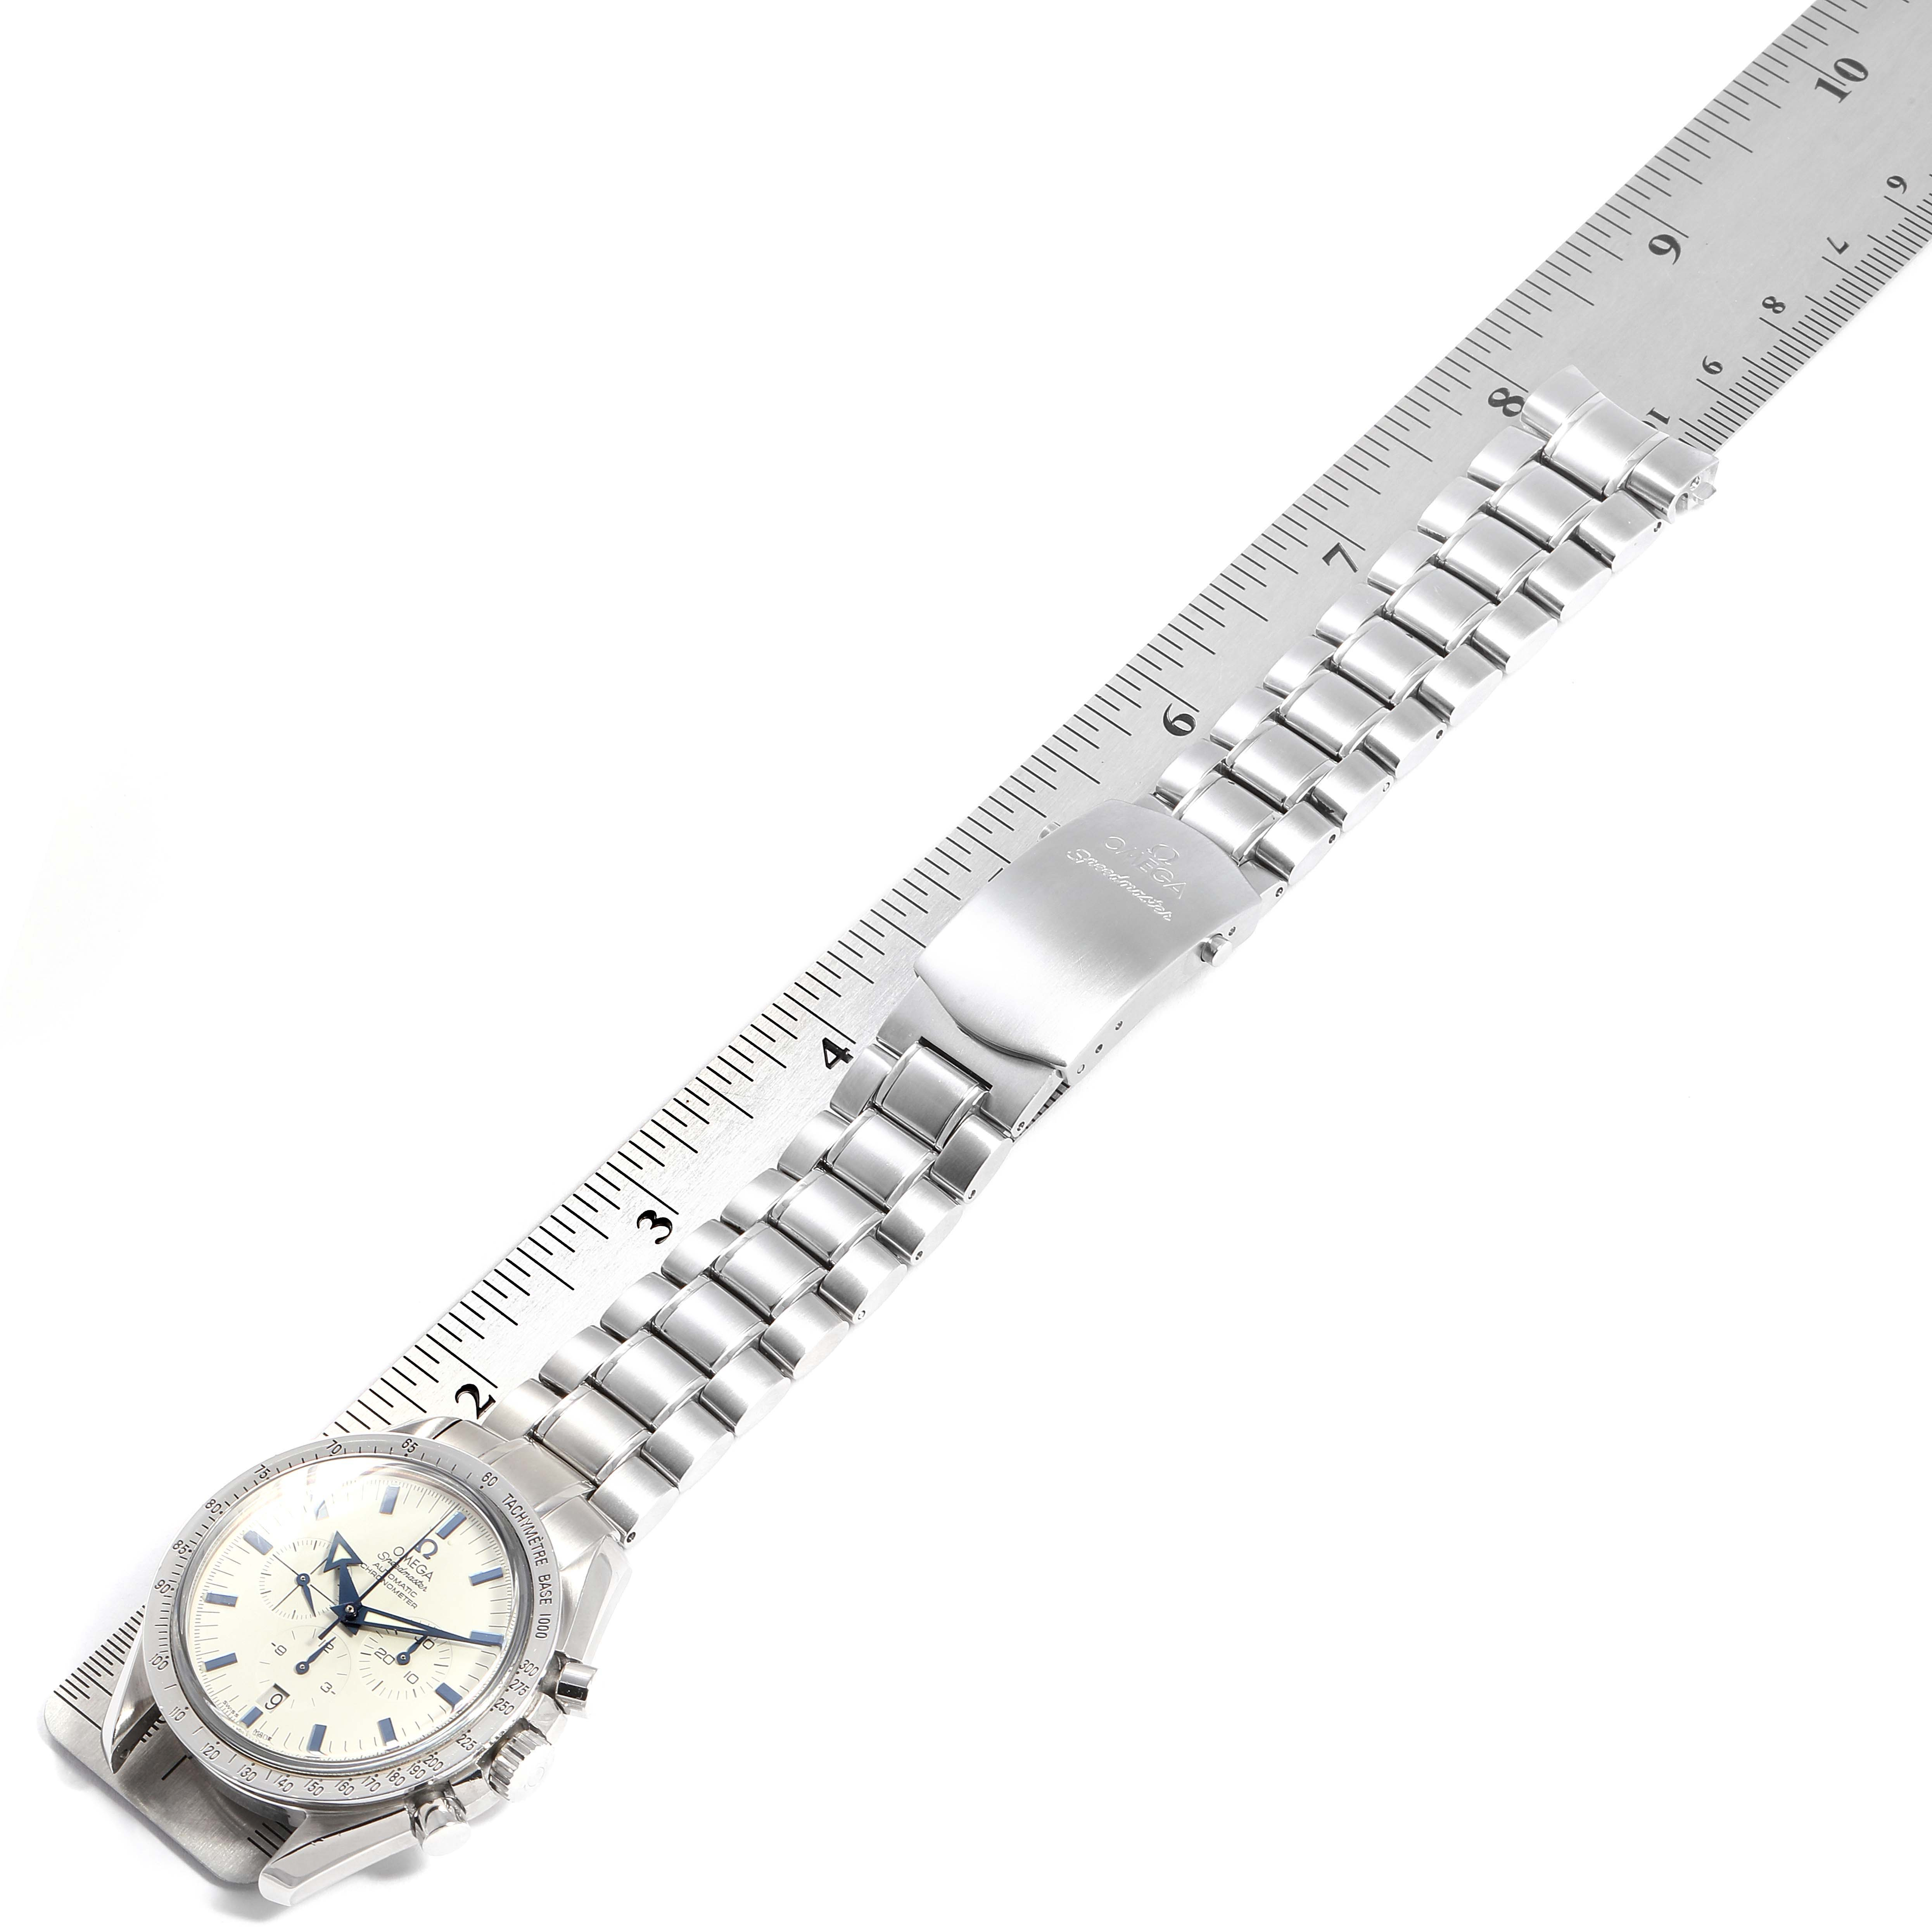 Omega Speedmaster Broad Arrow 1957 Chronograph Watch 3551.20.00 Box Card SwissWatchExpo